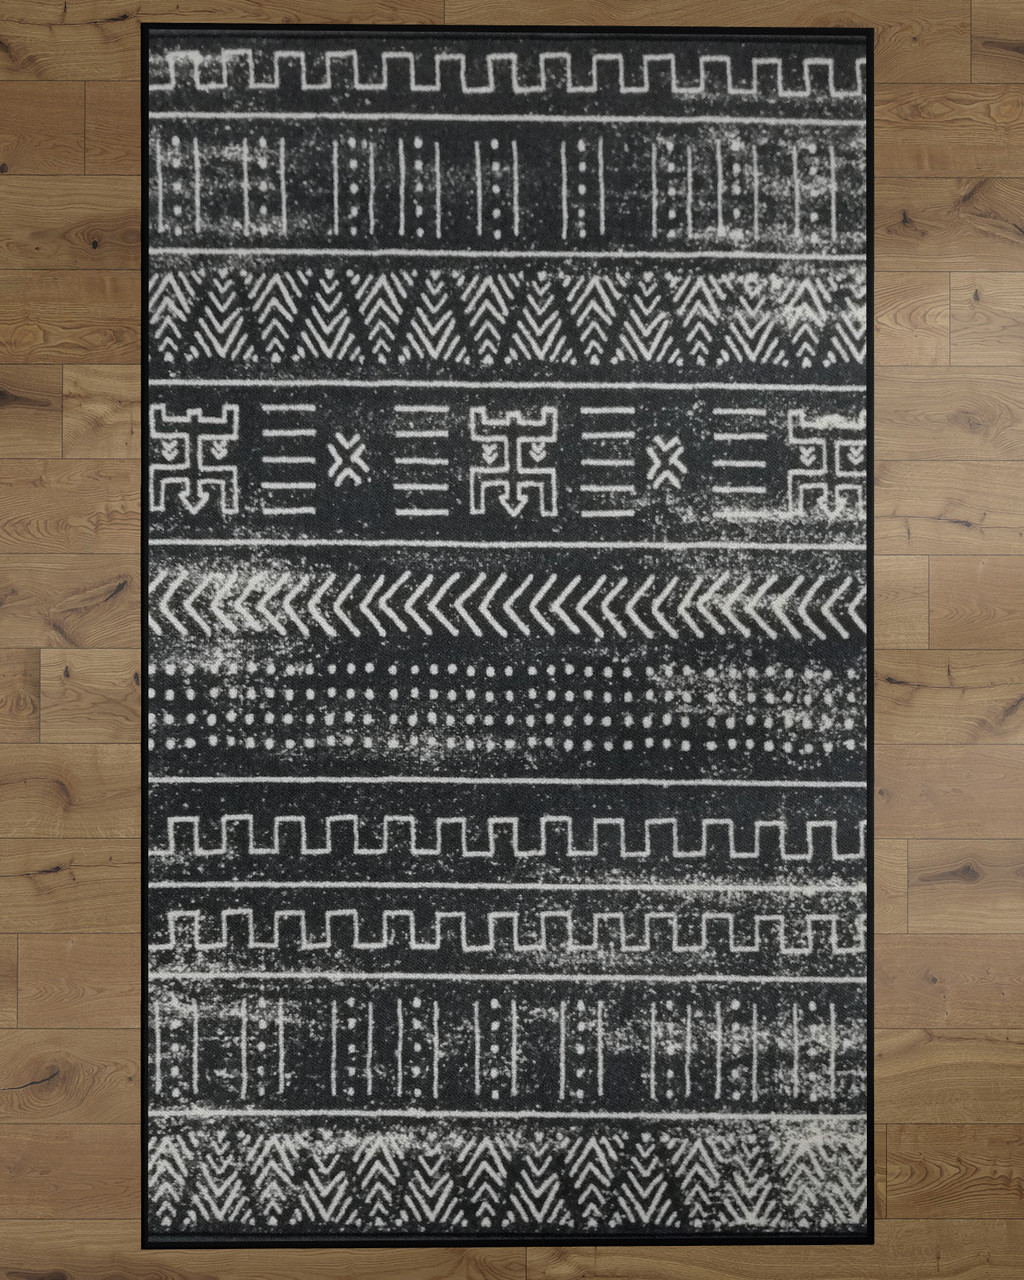 Deerlux Boho Living Room Area Rug With Nonslip Backing Black Tribal Pattern Quickway Imports Inc